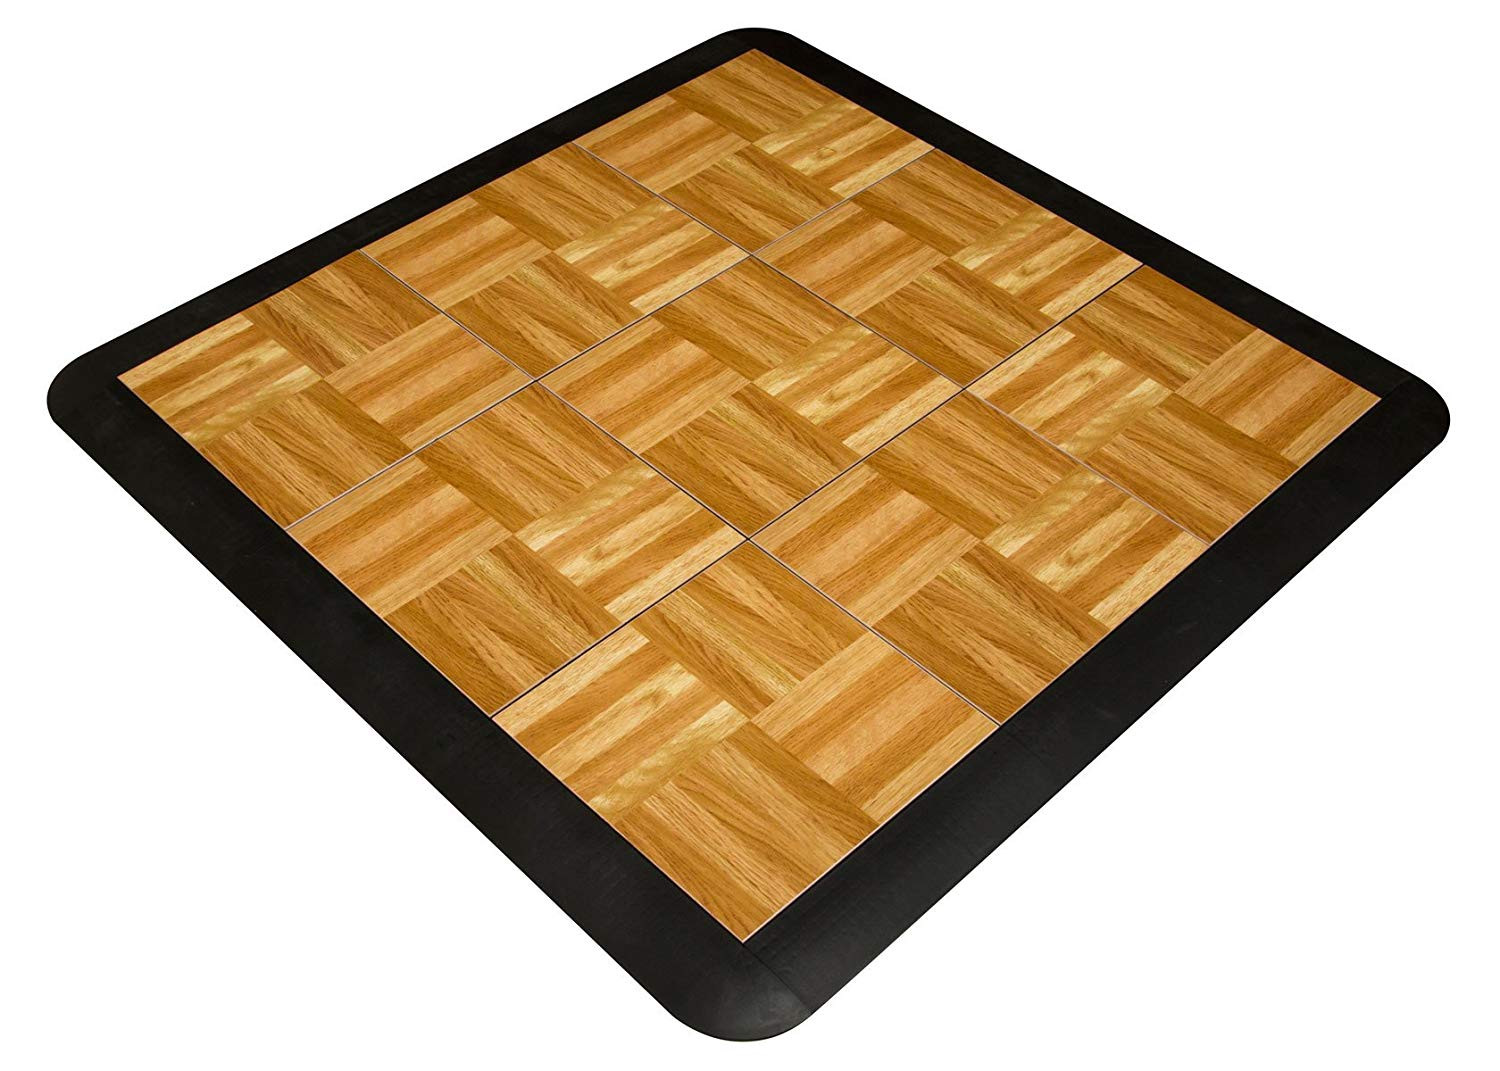 hardwood floor problems gaps of snapfloors 3x3oakfloor modular dance floor kit 3 x 3 oak 21 pertaining to snapfloors 3x3oakfloor modular dance floor kit 3 x 3 oak 21 piece amazon com